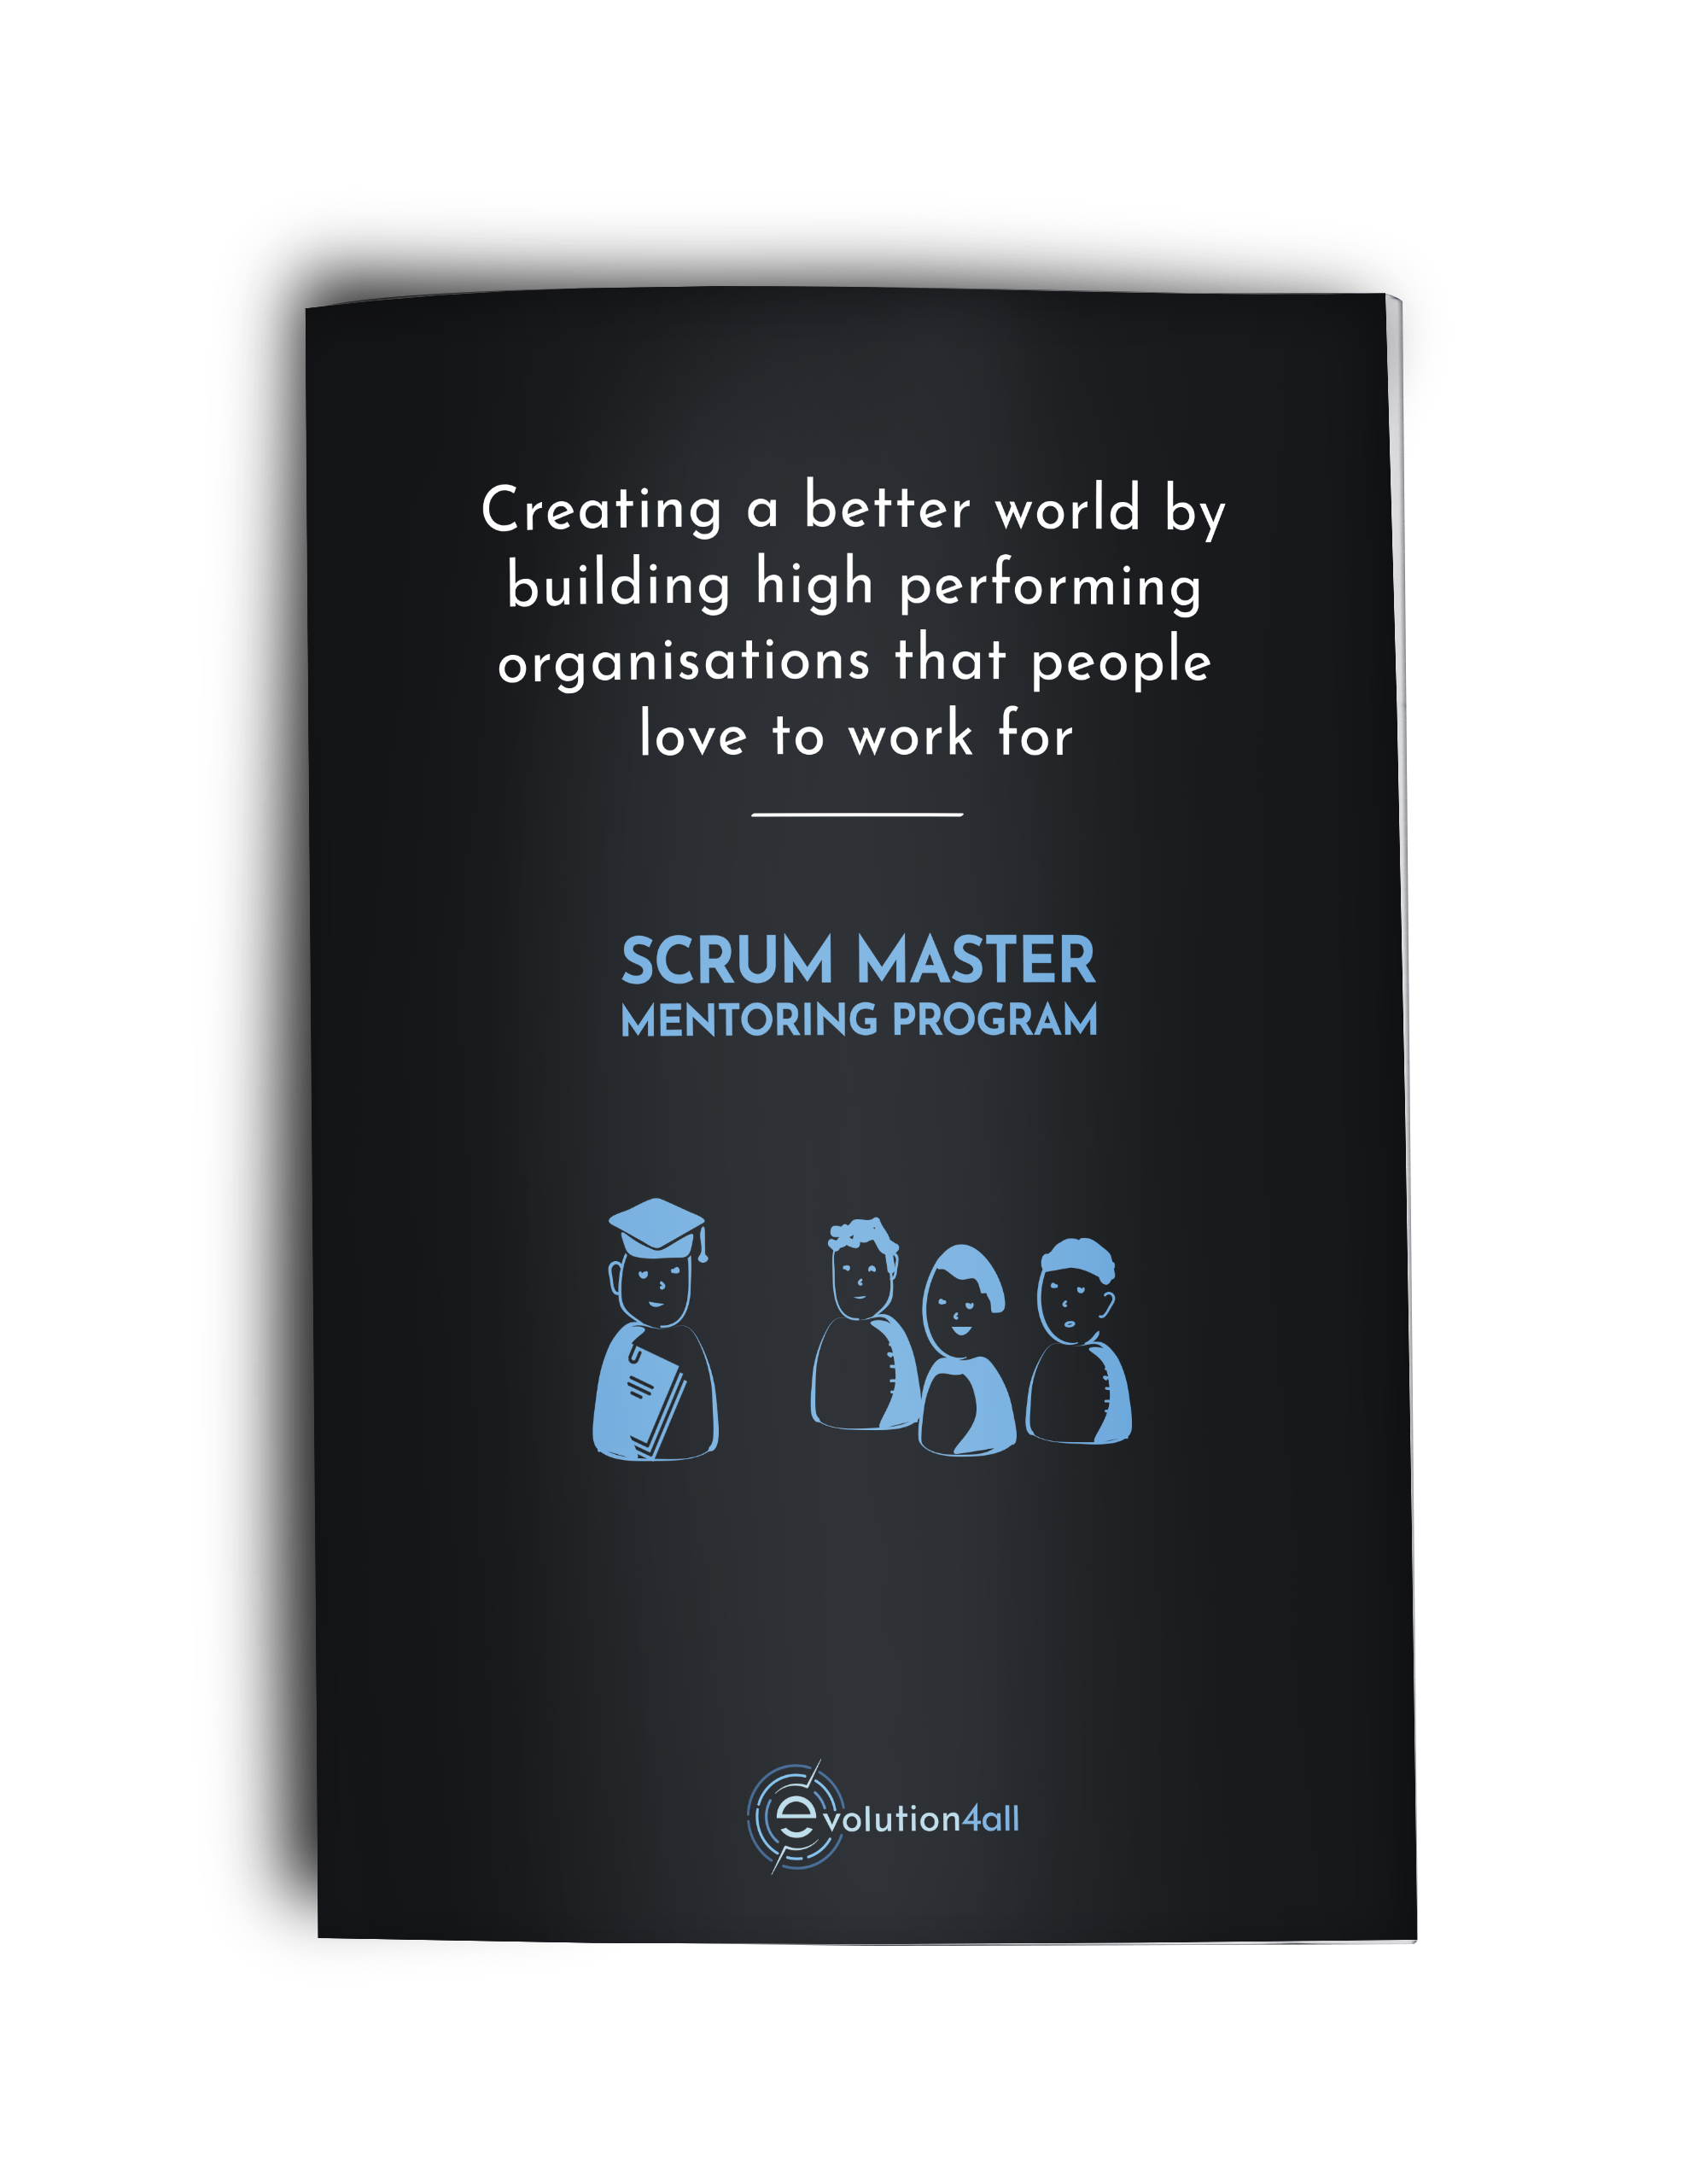 SCRUM MASTERS MENTORING PROGRAMME